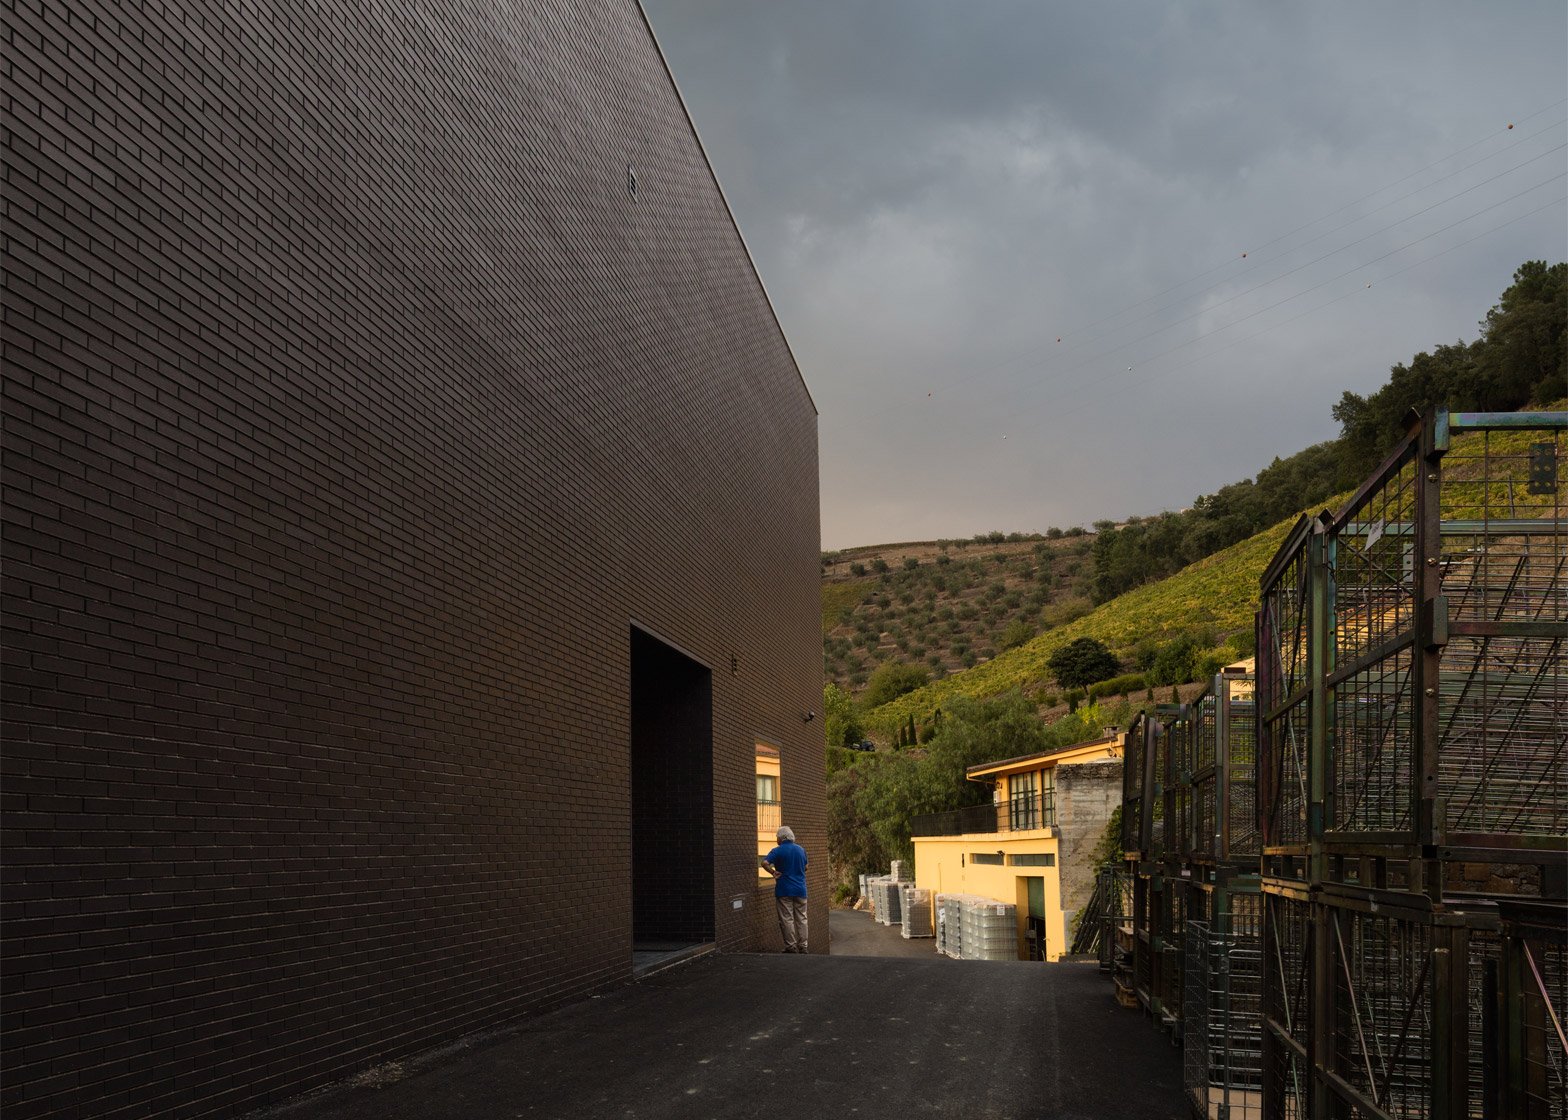 Winery by Belem Lima